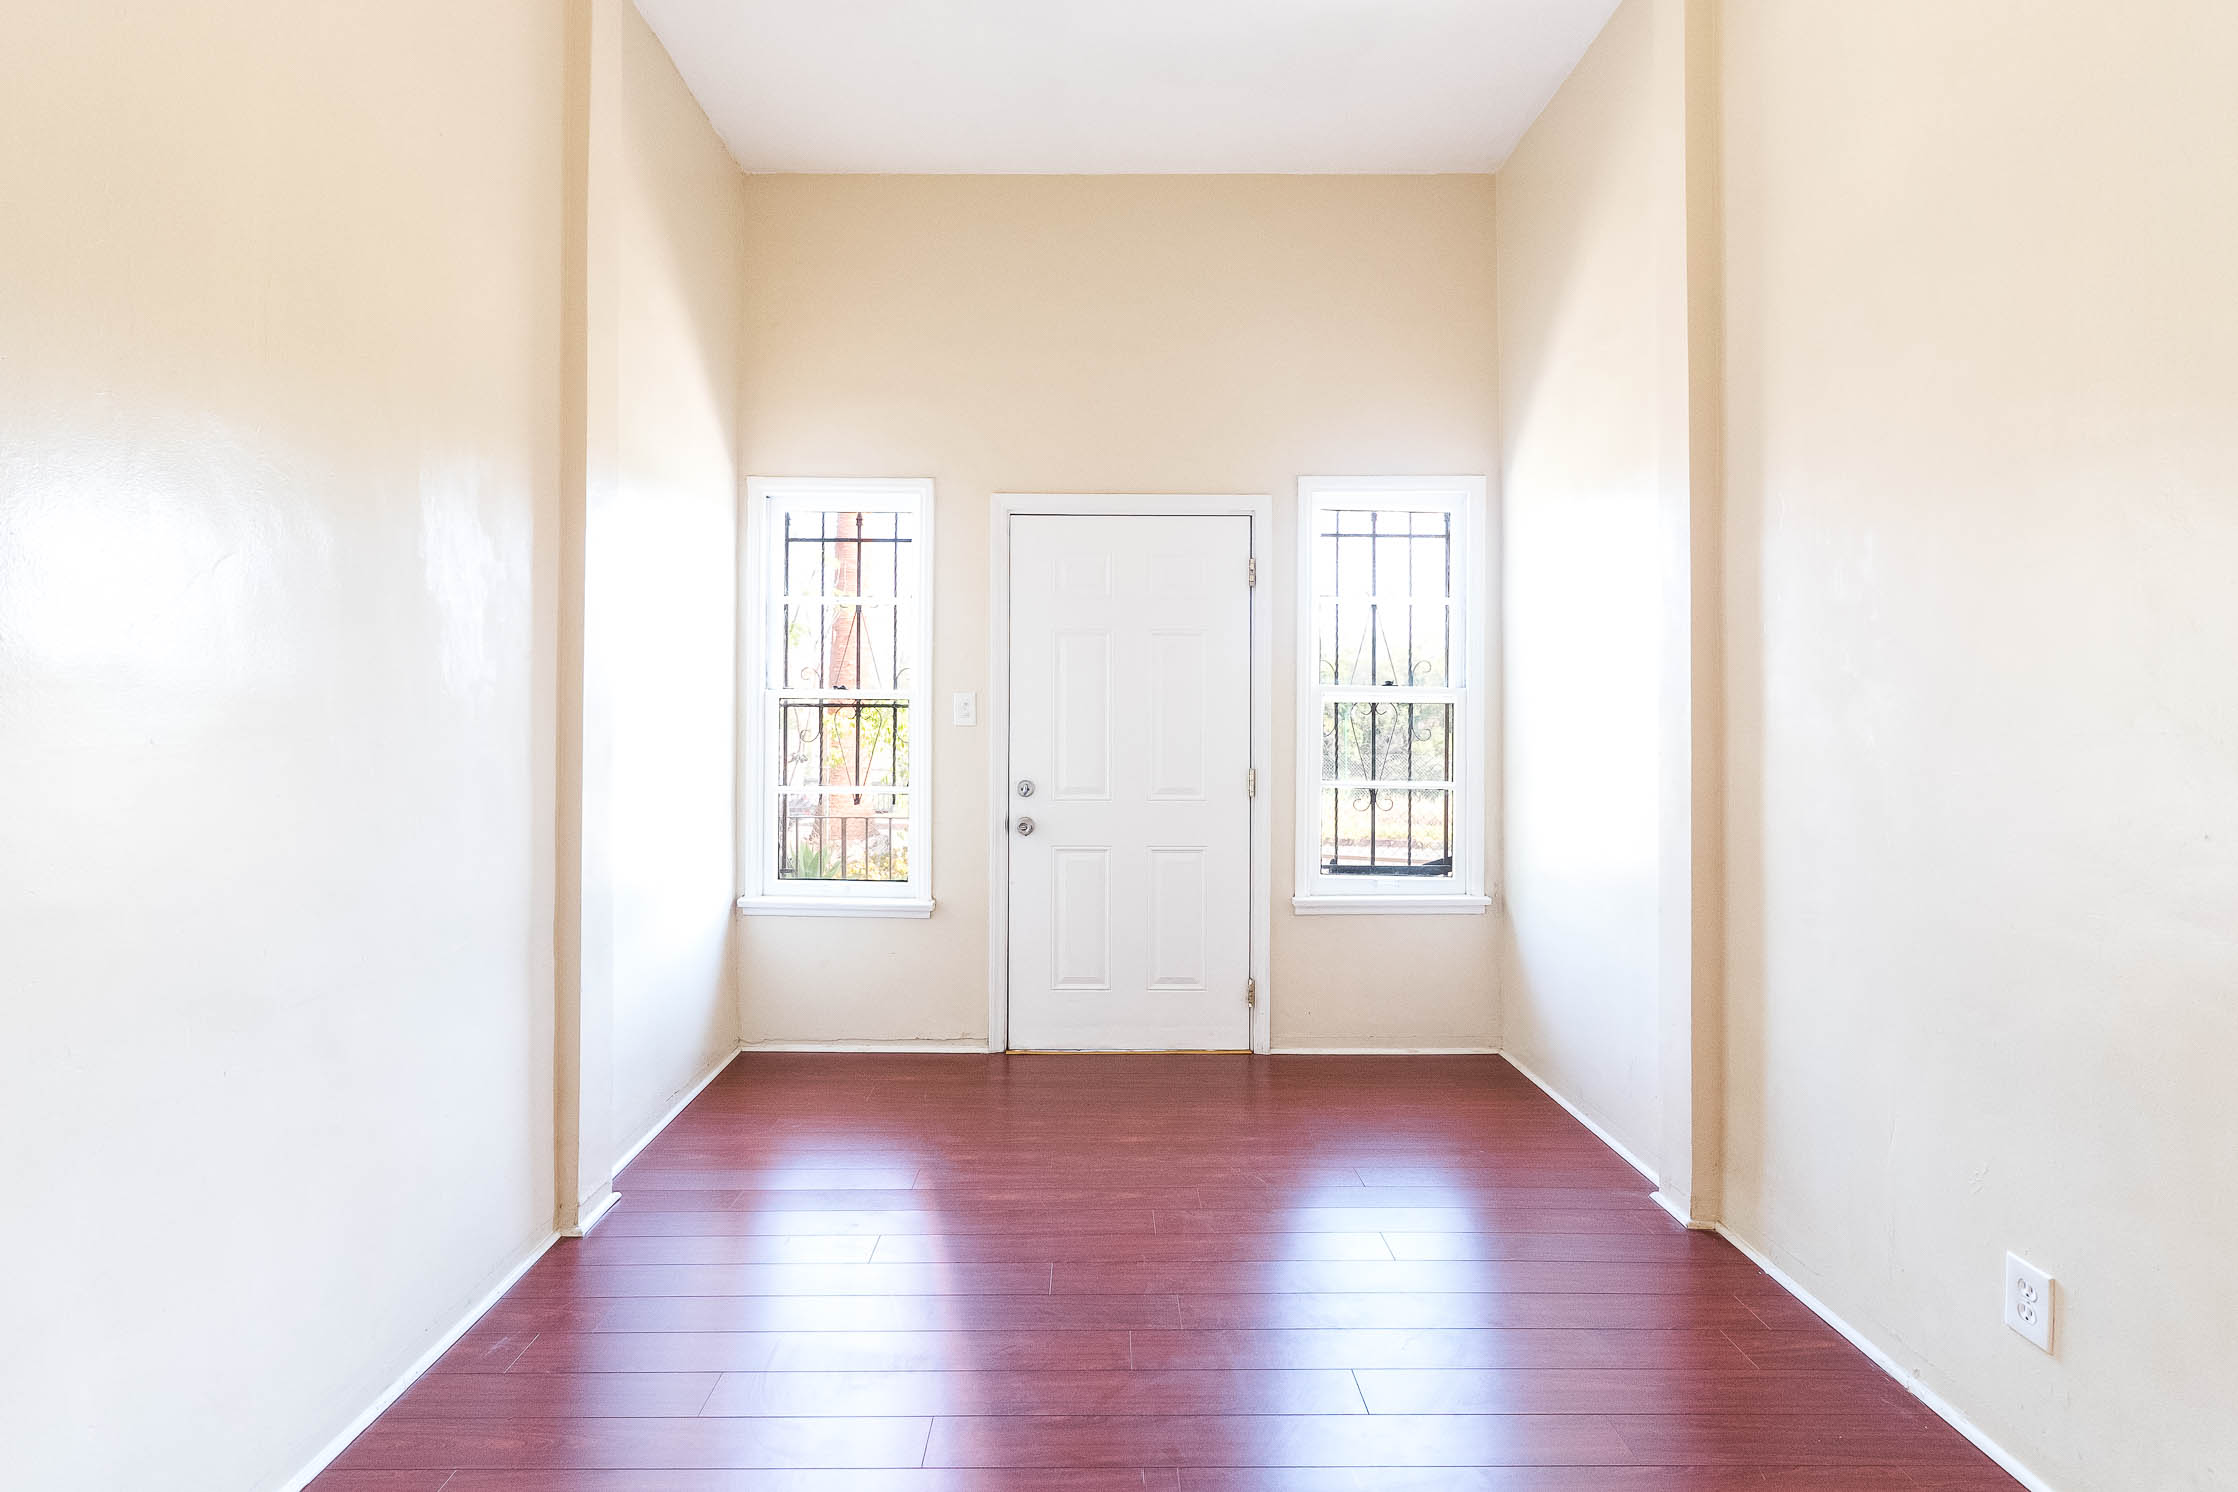 Chinatown 4-Plex | Minutes From Dodger Stadium, Prime Chinatown, & DTLA | 1 Parking Space Included!